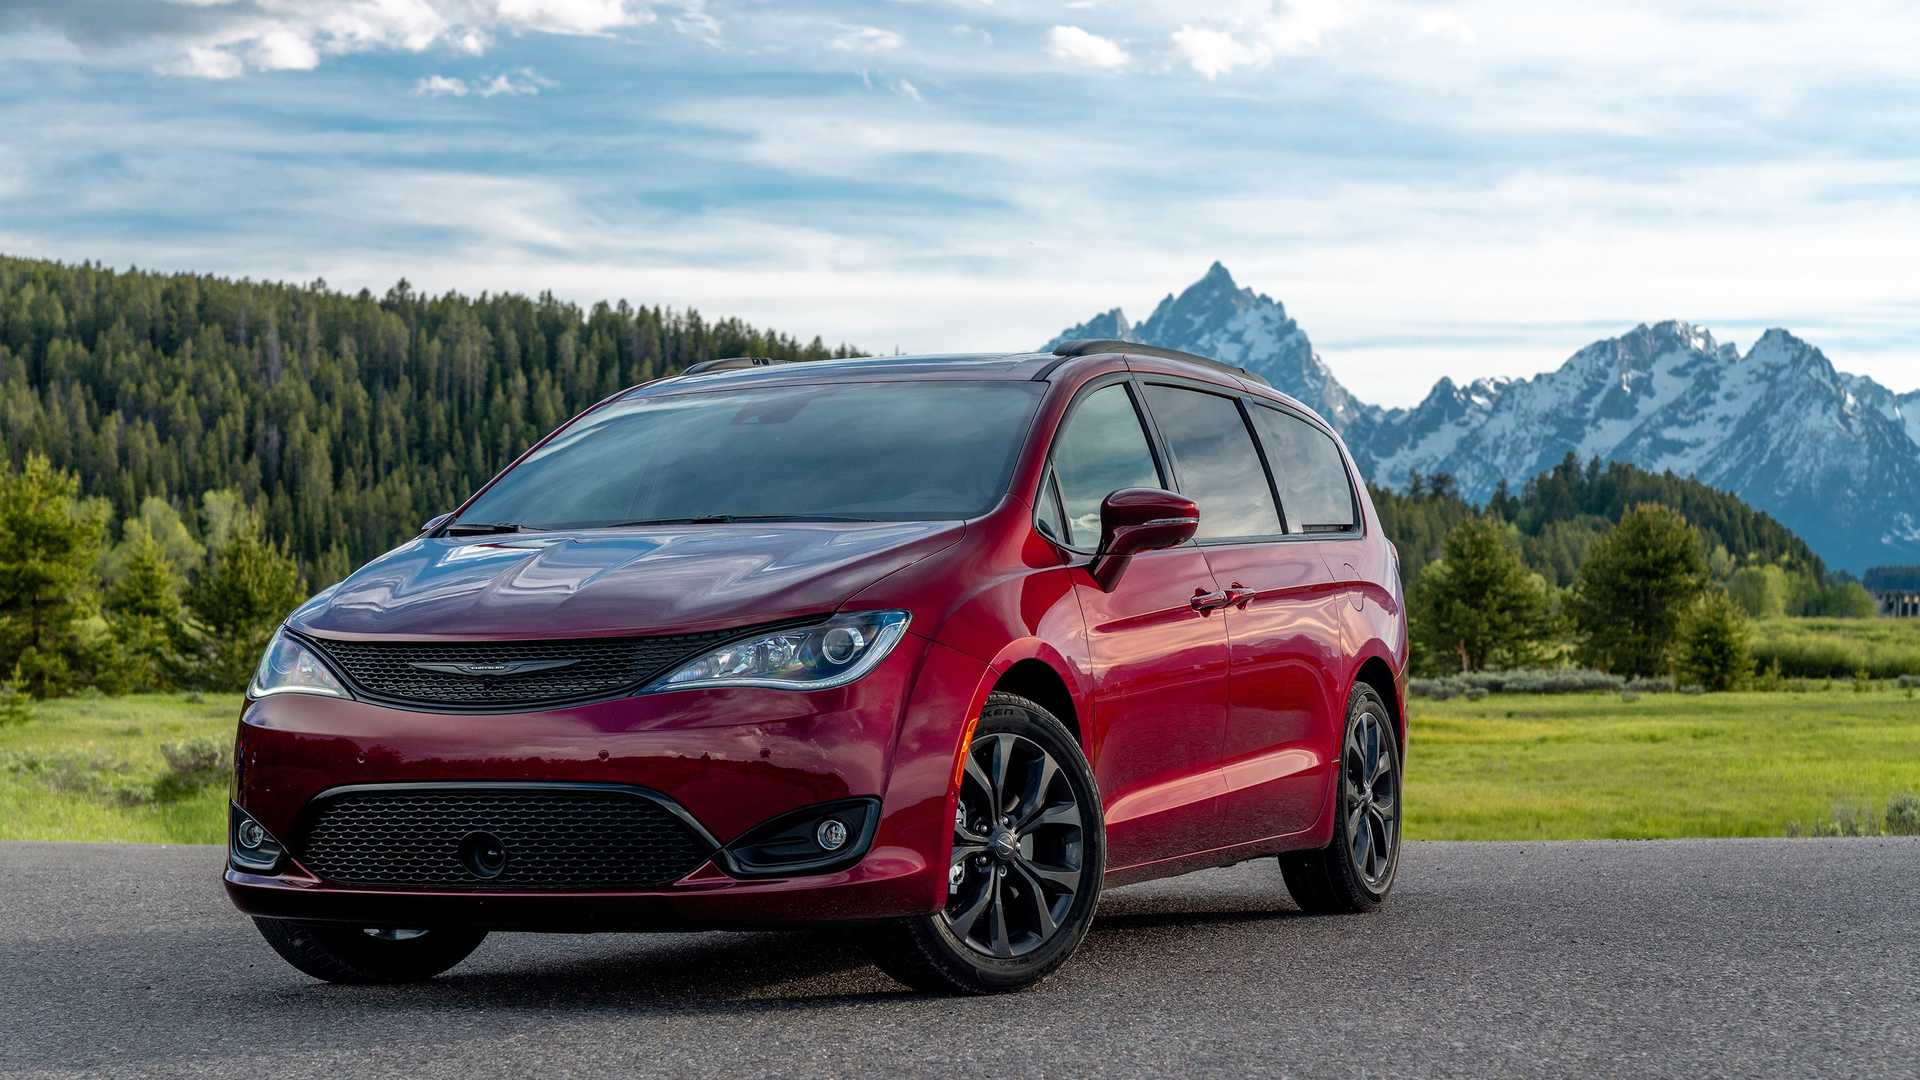 2020_Chrysler_Pacifica_Red_S_Edition_0022